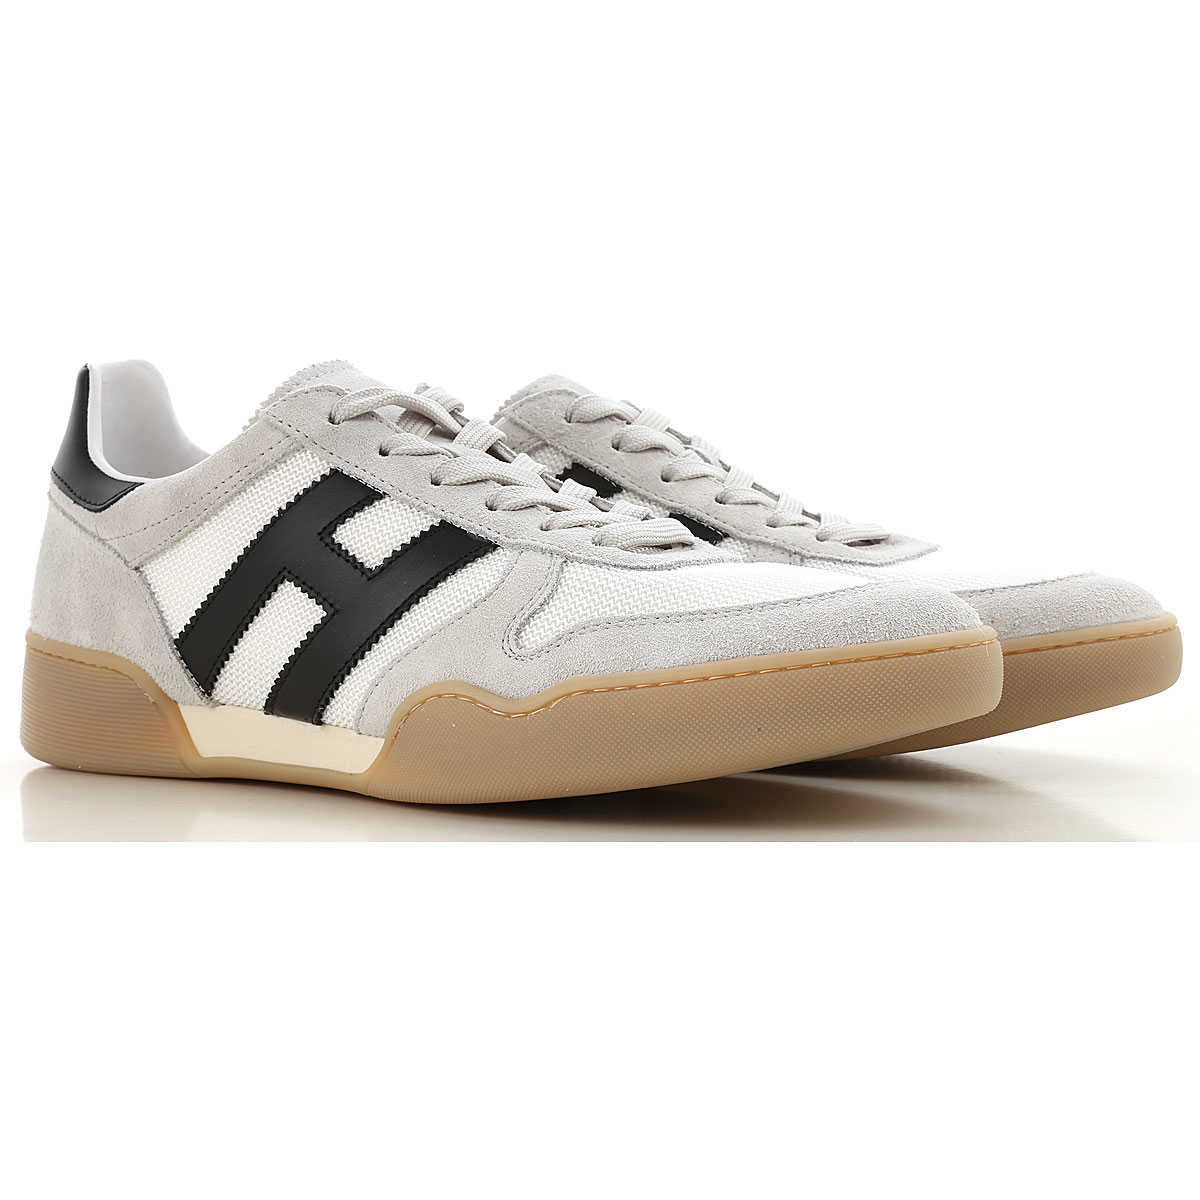 Hogan Sneakers for Men, Dirty White, suede, 2019, 10 10.5 11 12 6 ...